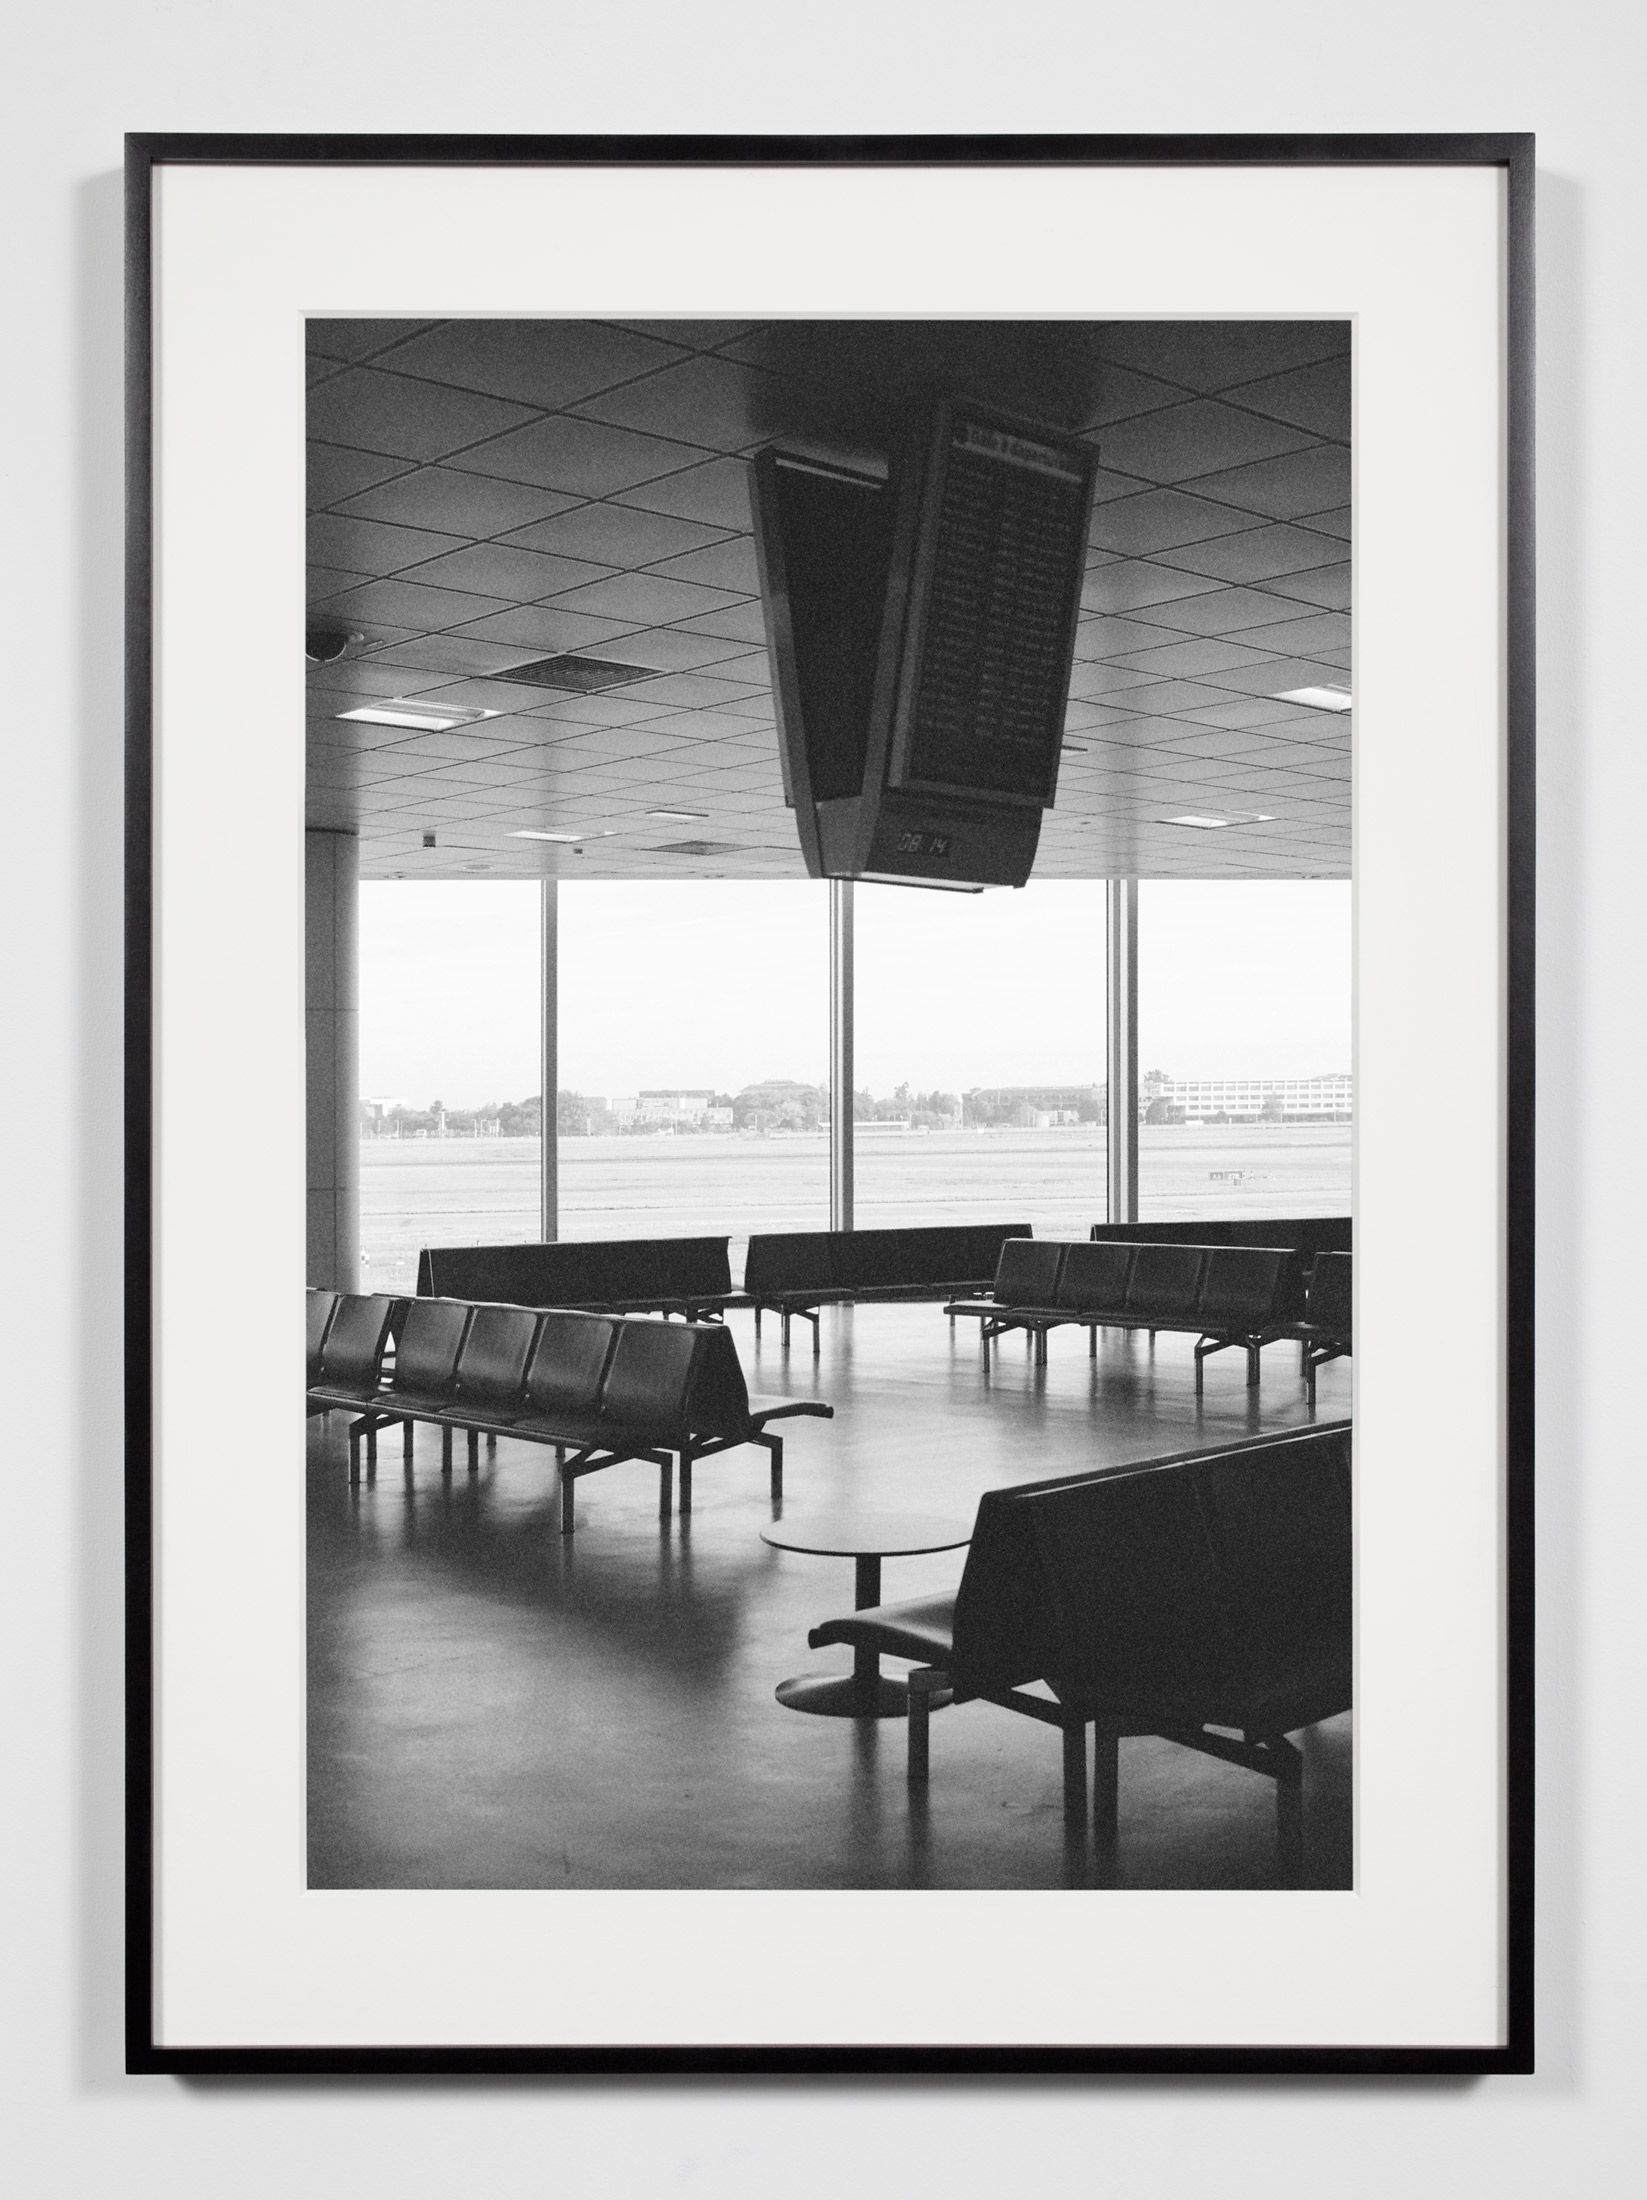 Airport Lounge, Belfast, Ireland, September 10, 2010    2011   Epson Ultrachrome K3 archival ink jet print on Hahnemühle Photo Rag paper  36 3/8 x 26 3/8 inches   Industrial Portraits, 2008–